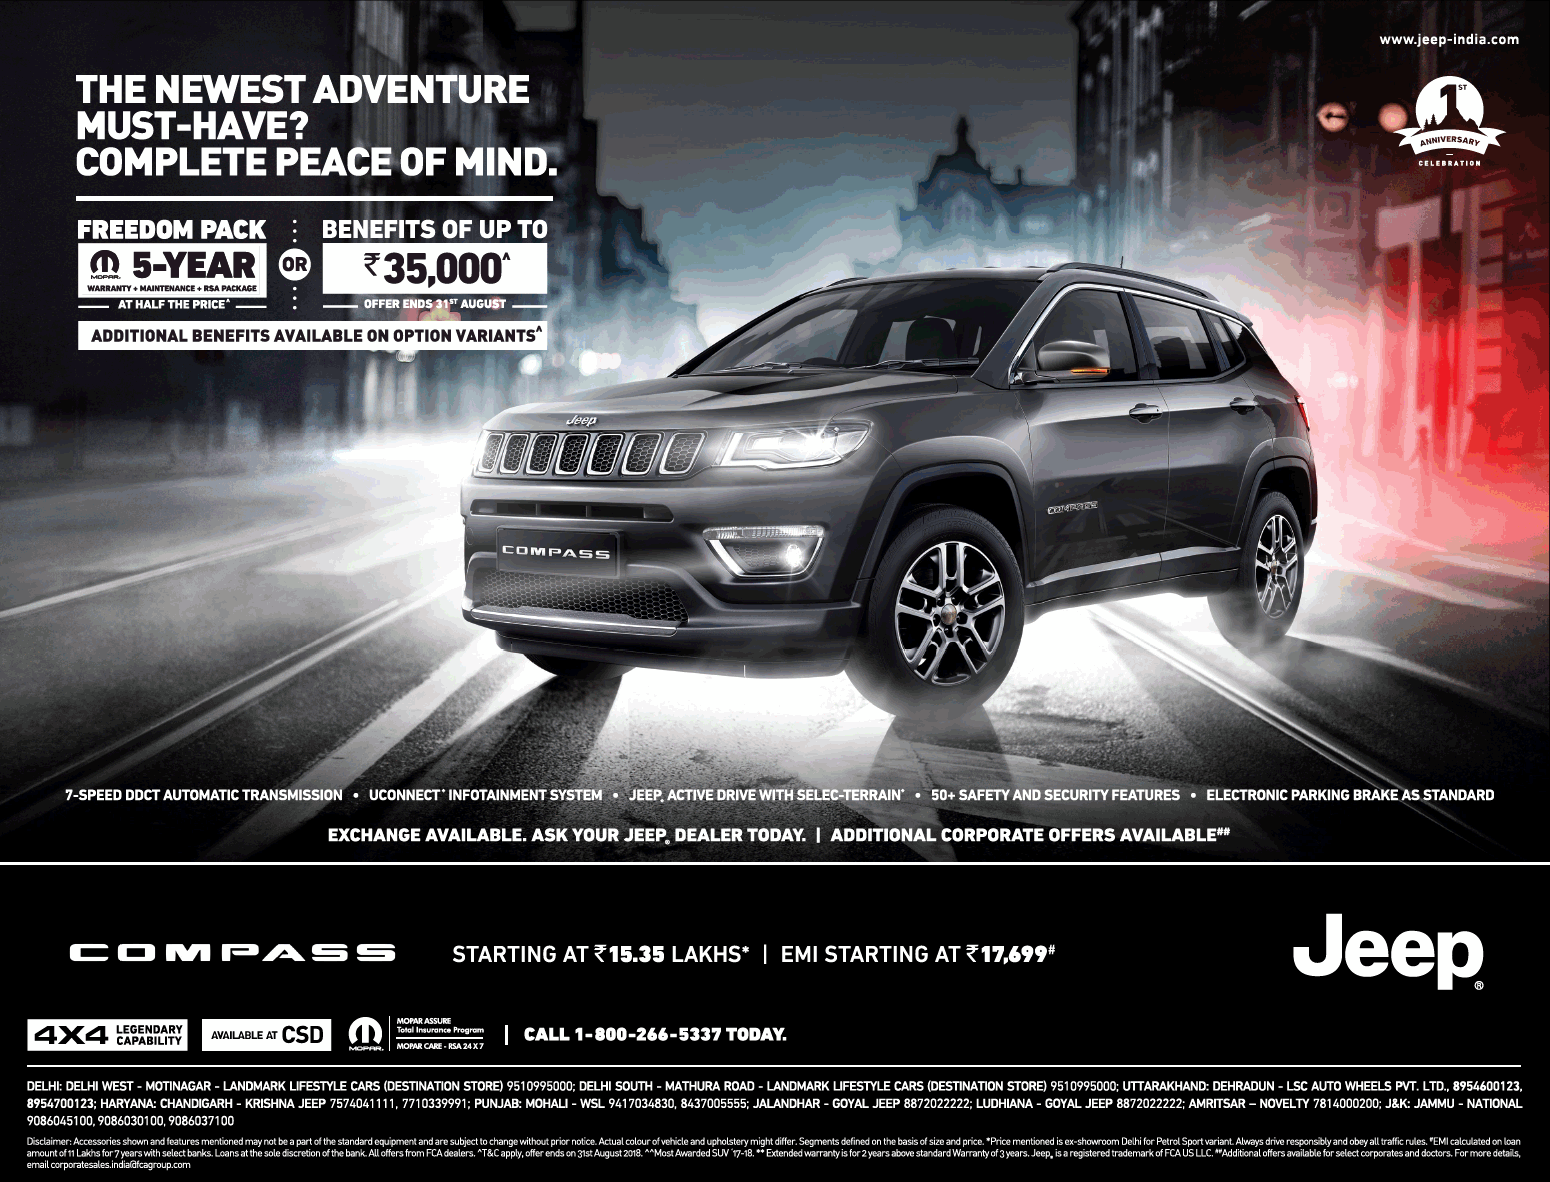 Jeep Compass The Newest Adventure Ad Times Of India Delhi Check